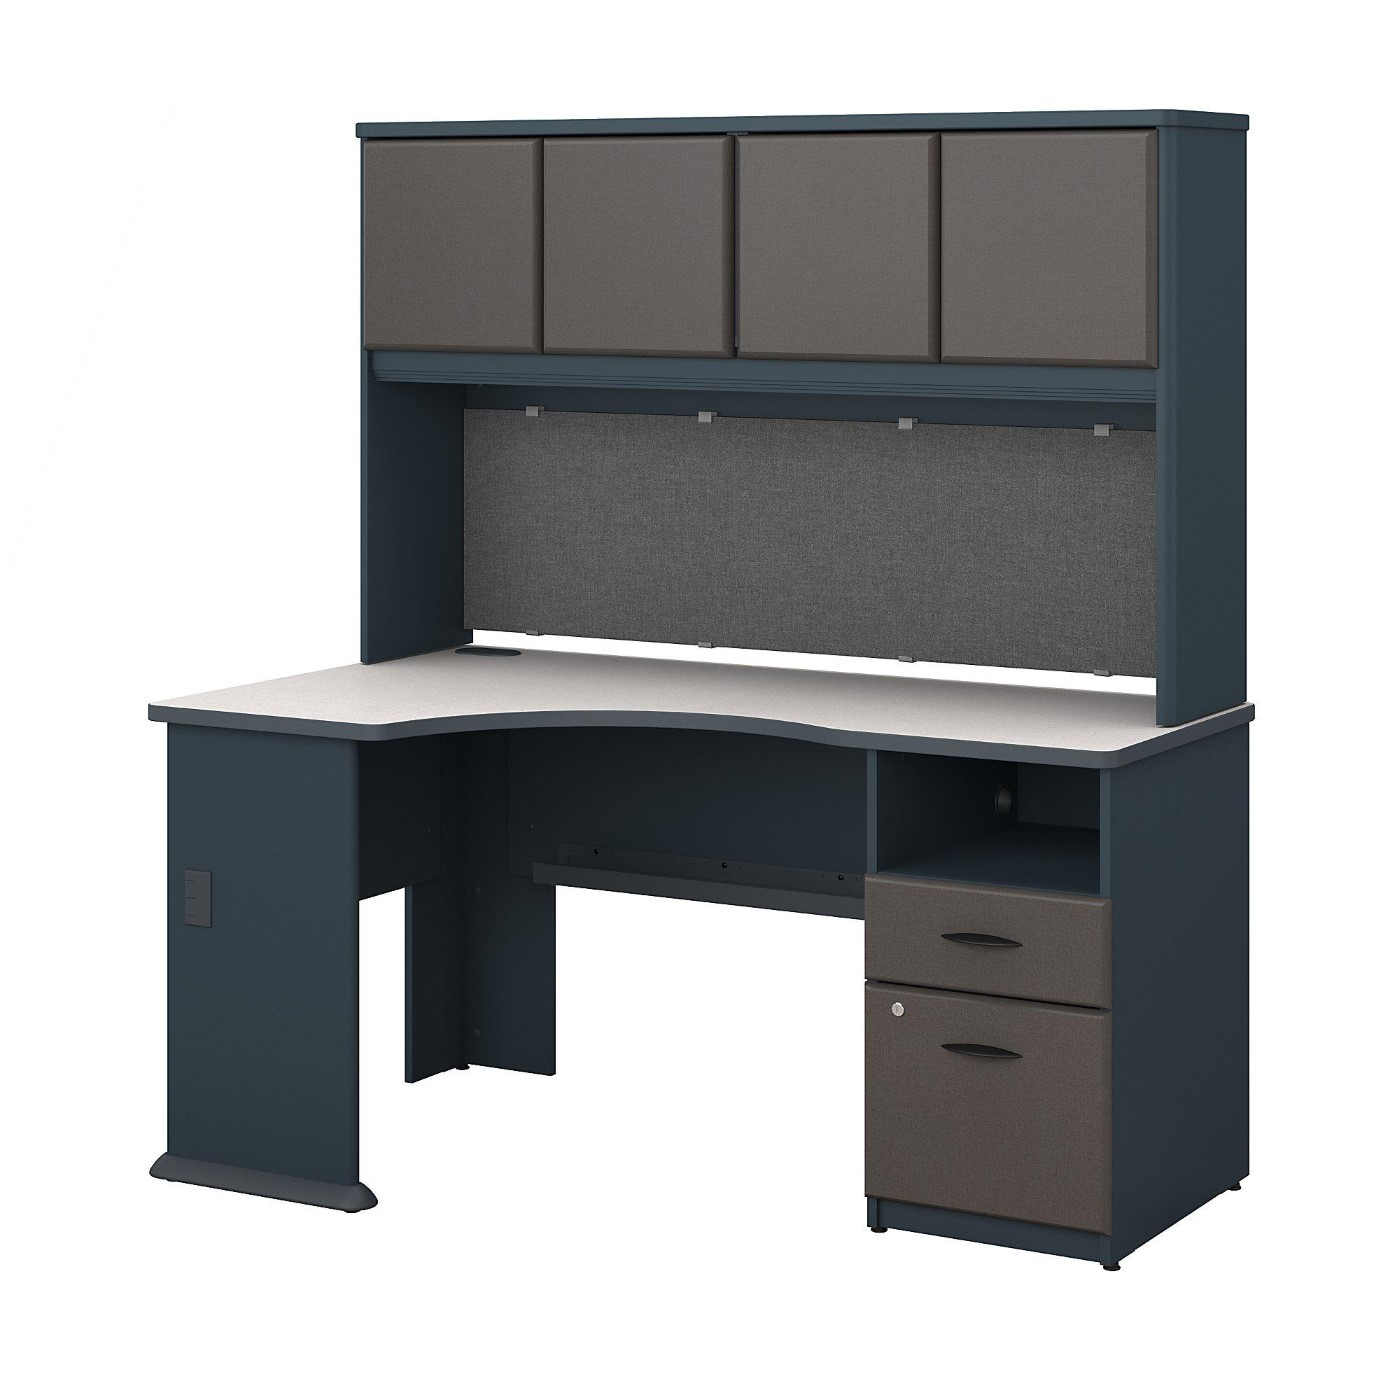 <font color=#c60><b>BUSH BUSINESS FURNITURE SERIES A 60W CORNER DESK WITH HUTCH AND 2 DRAWER PEDESTAL. FREE SHIPPING</font></b></font>